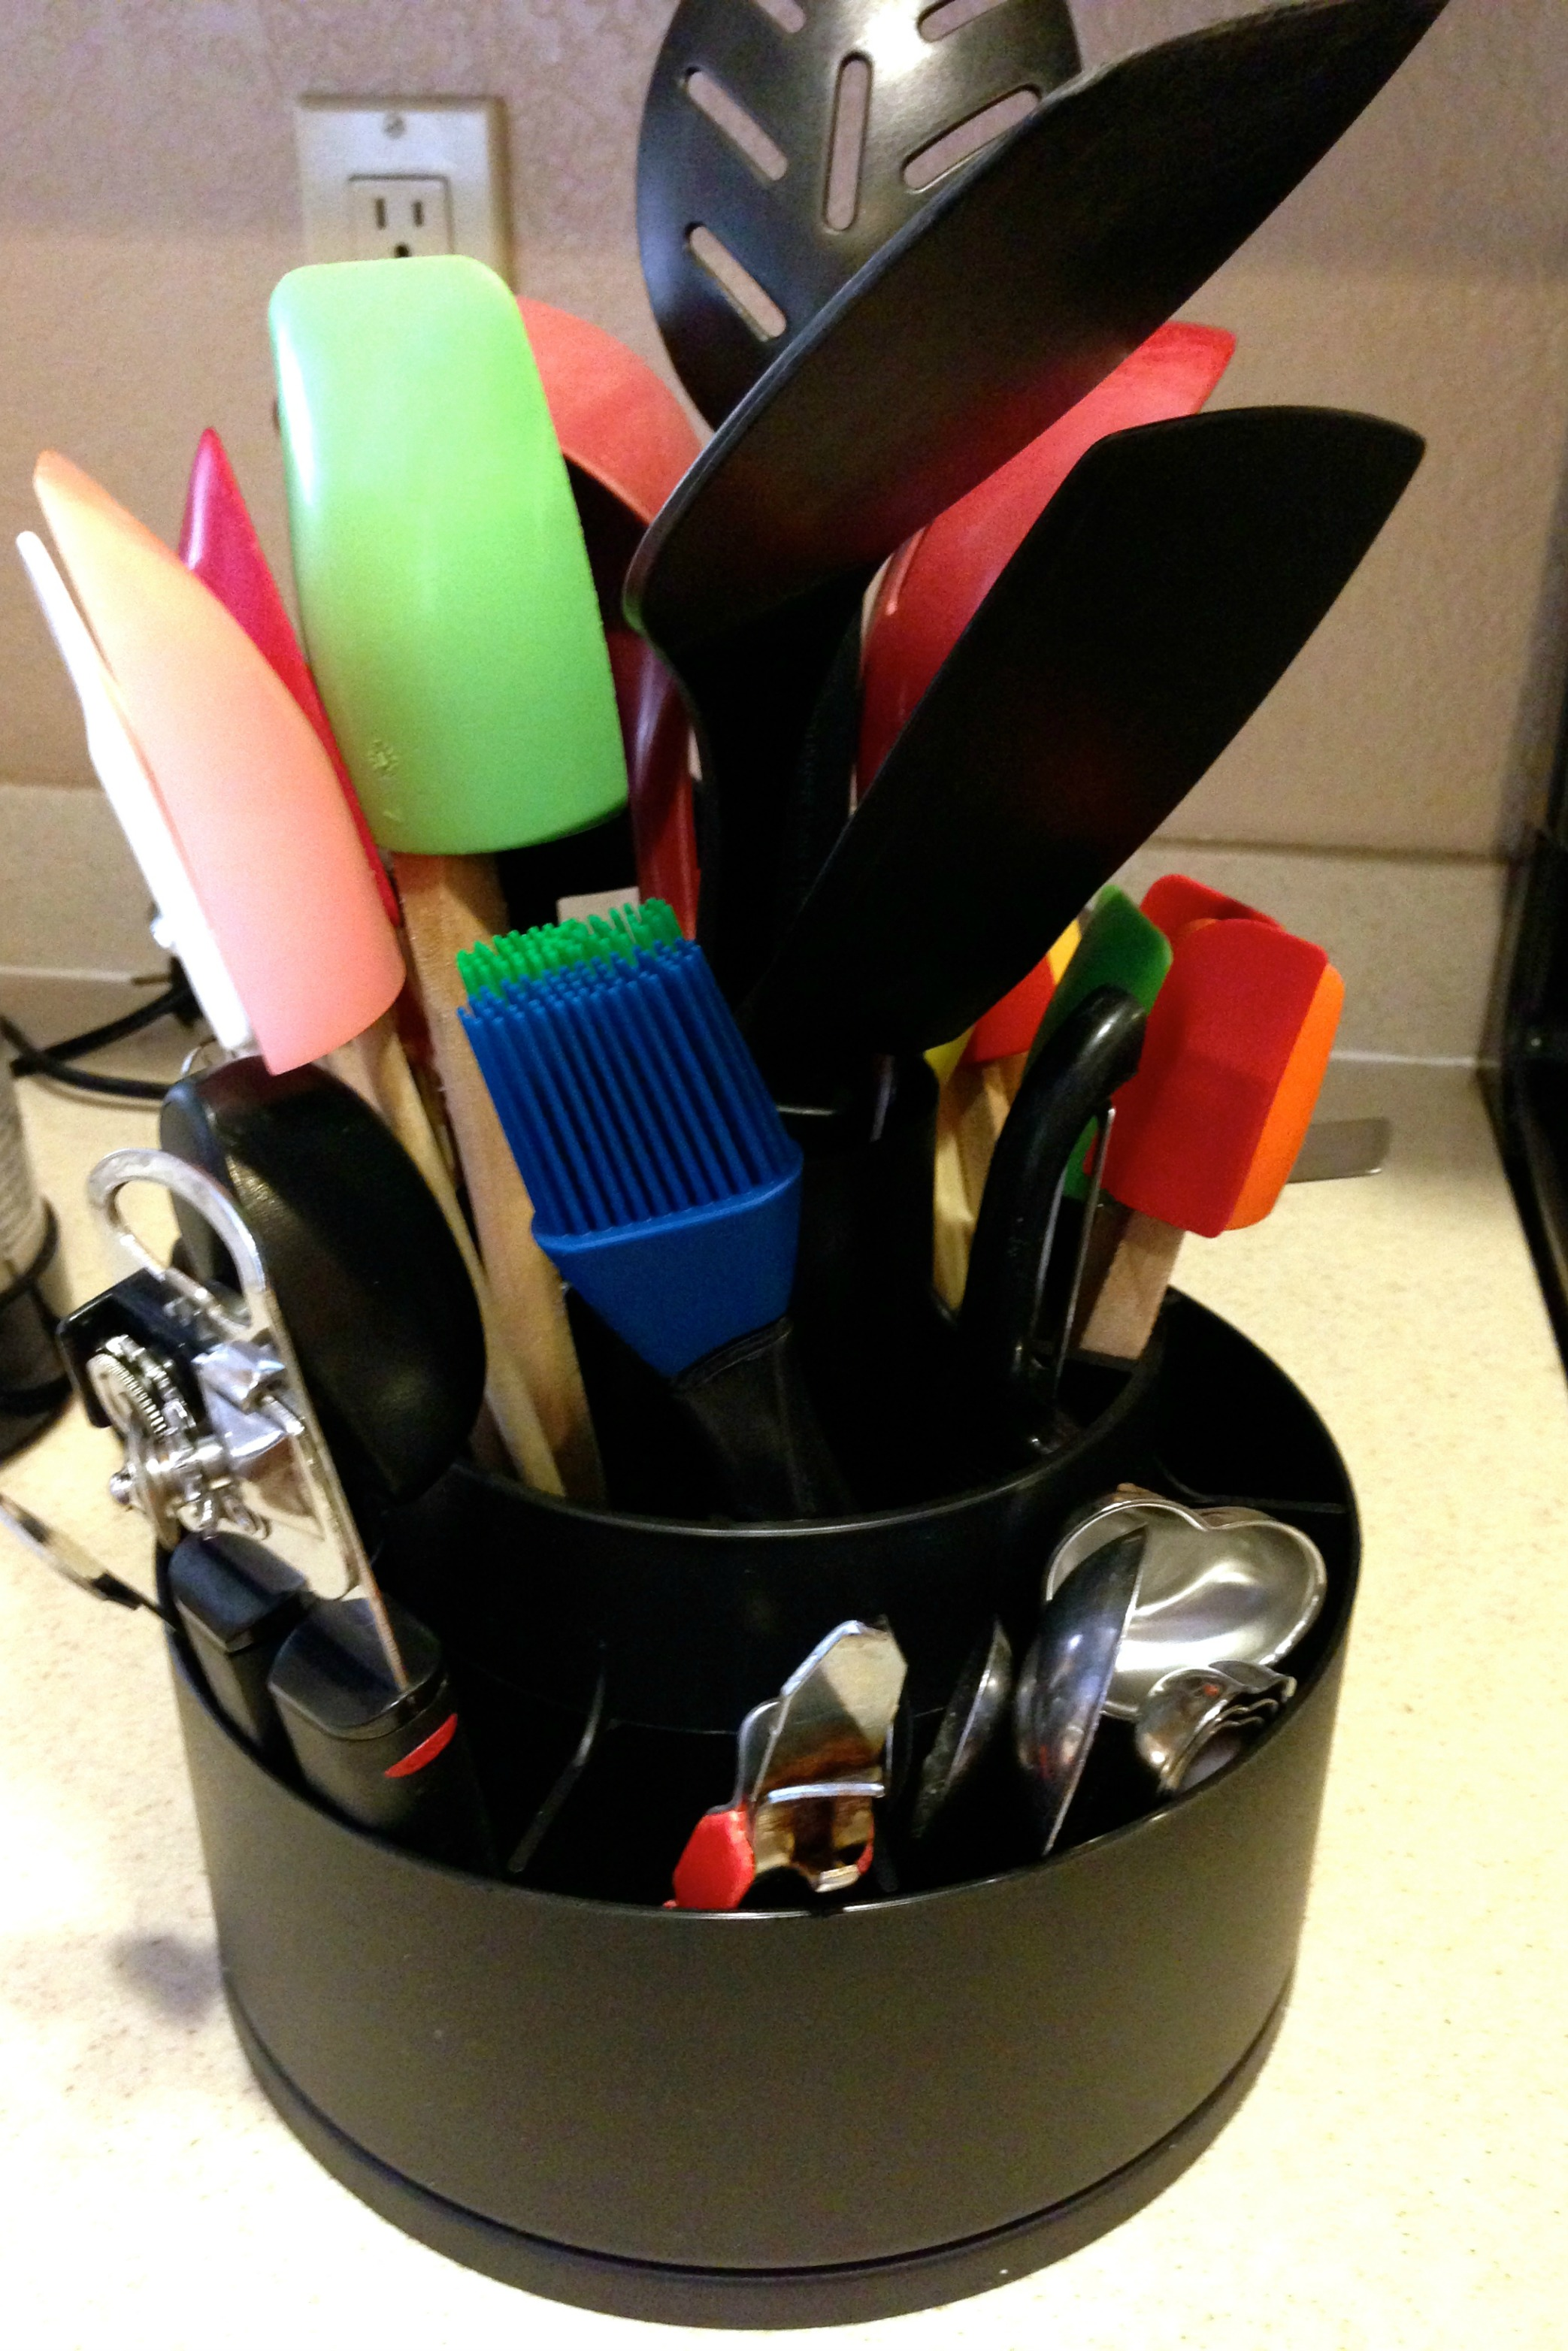 Pampered Chef Organizer